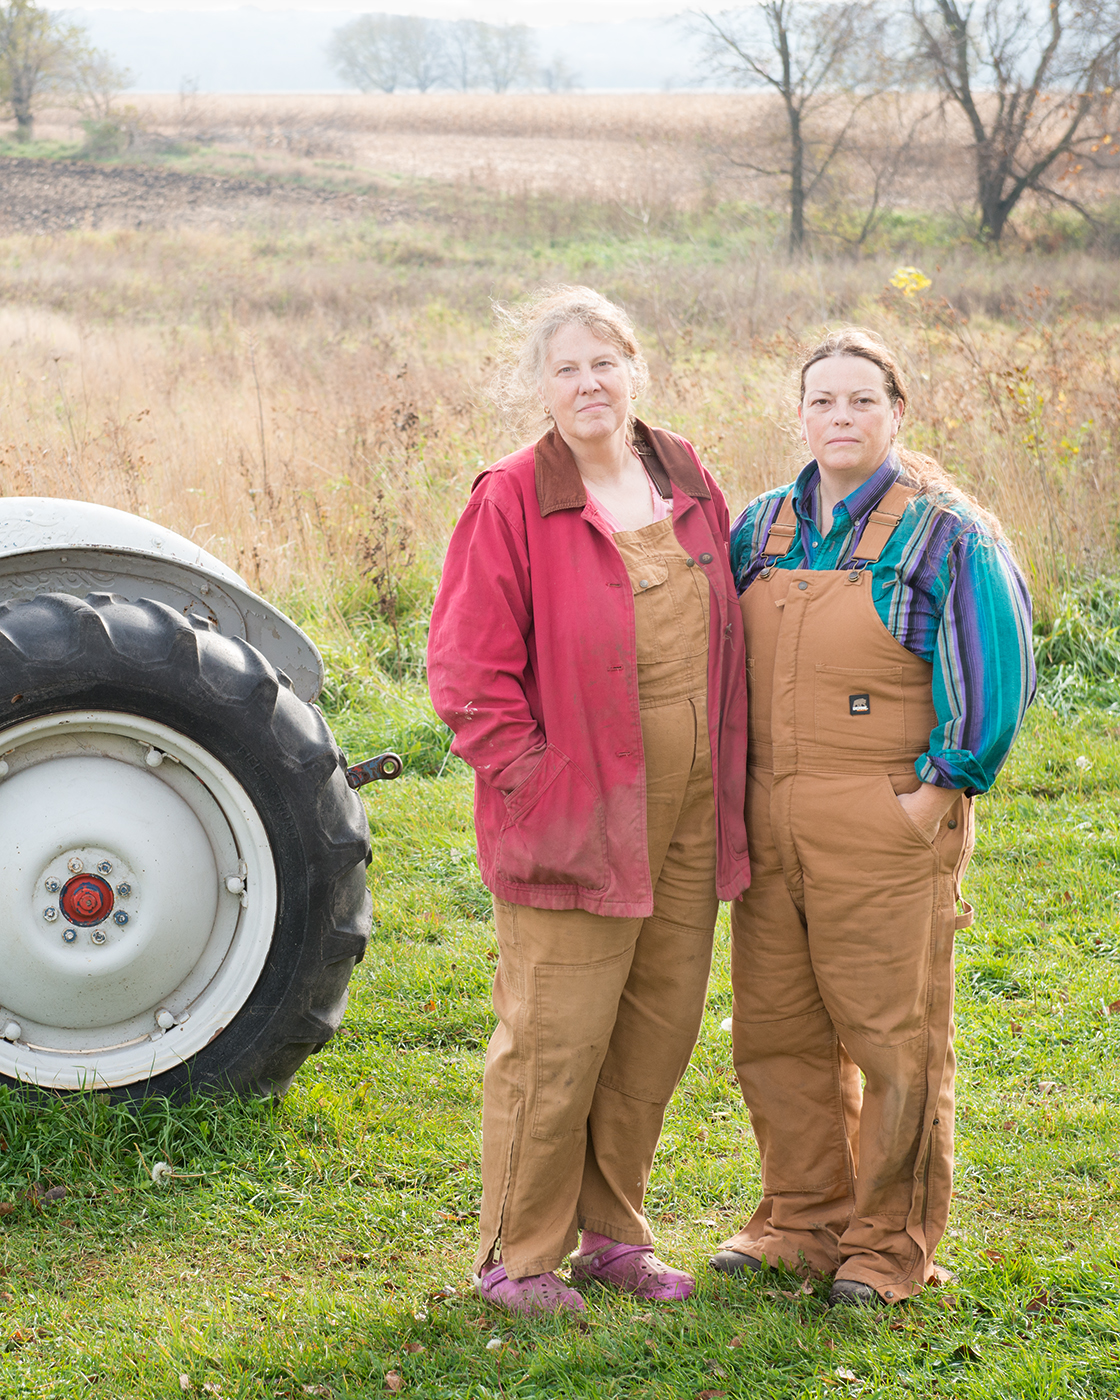 Lynne and Jalynn, scholars in Sustainable Agriculture     Uprooted